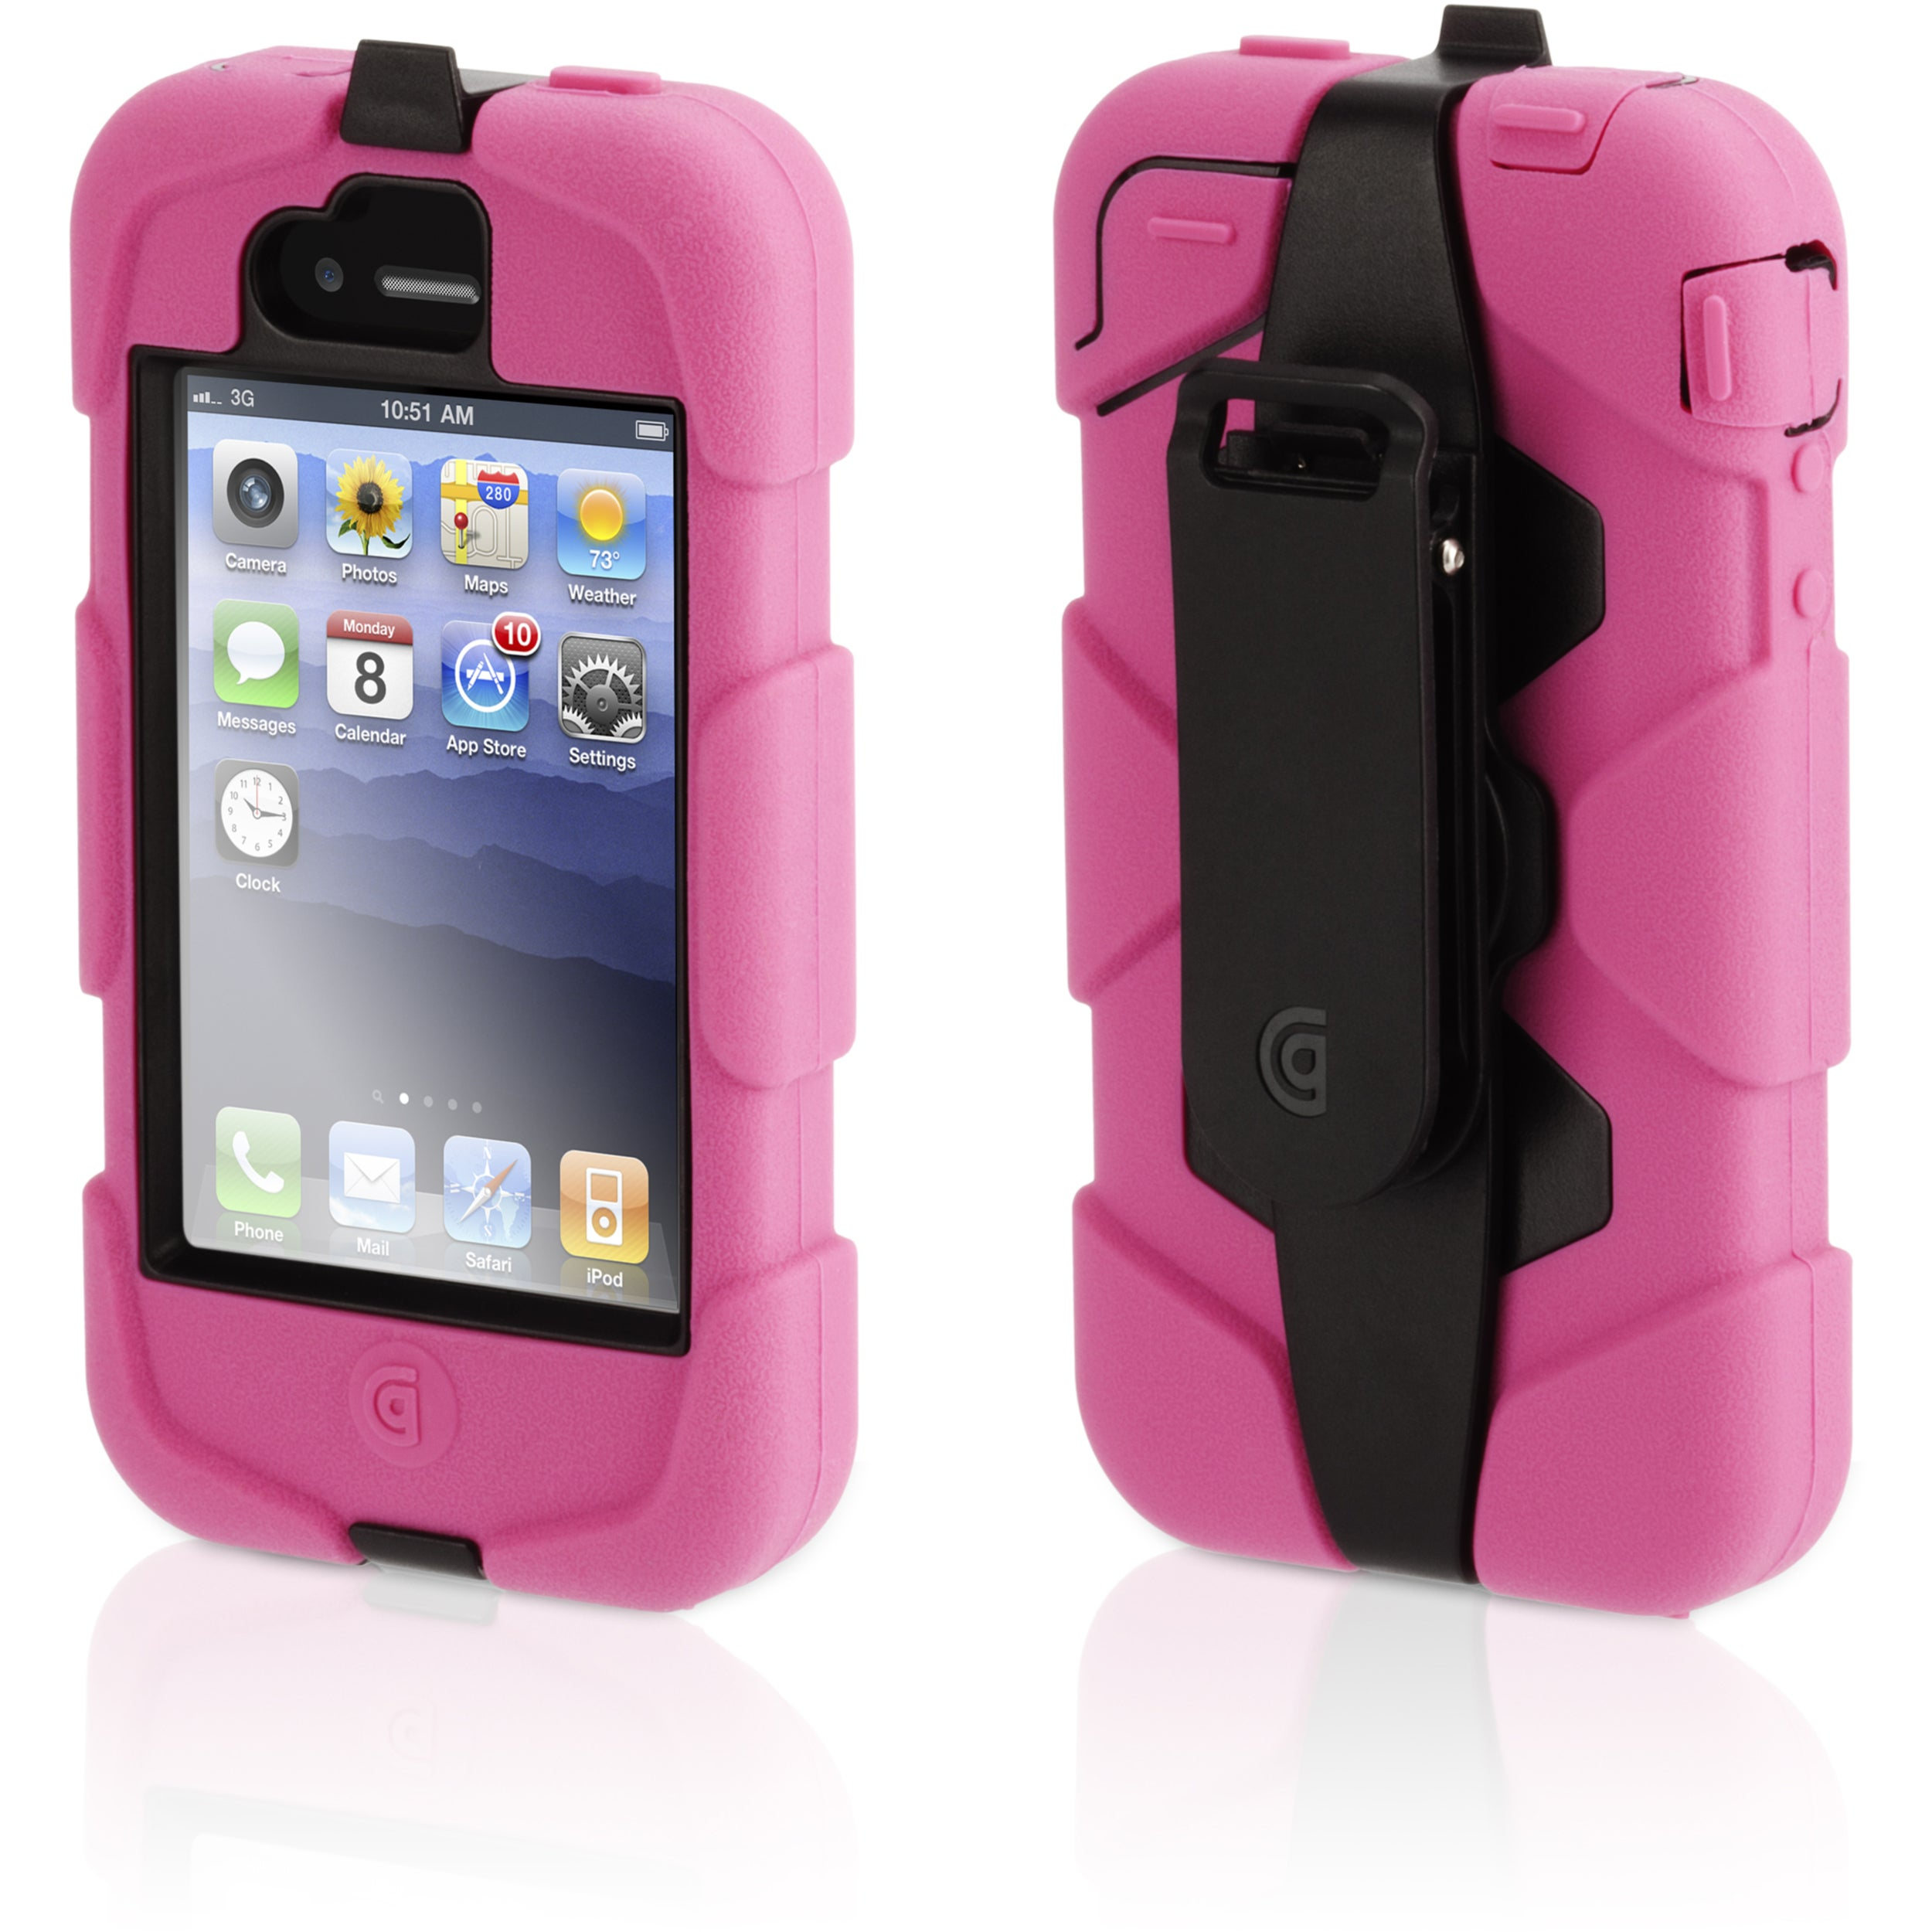 Griffin Survivor GB02476 Carrying Case for iPhone - Pink, Black